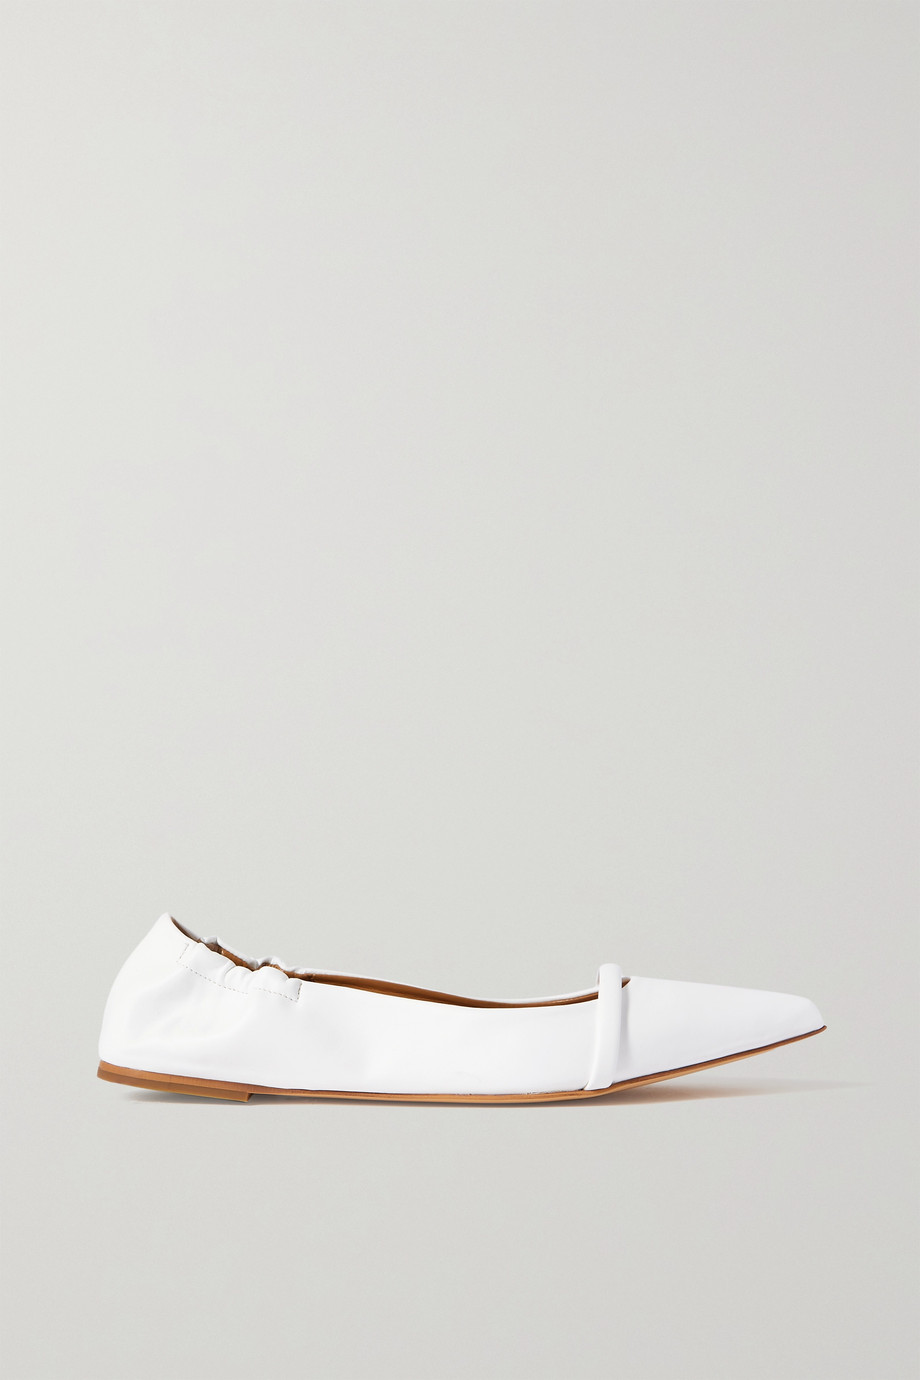 MALONE SOULIERS Raya vegan leather point-toe flats